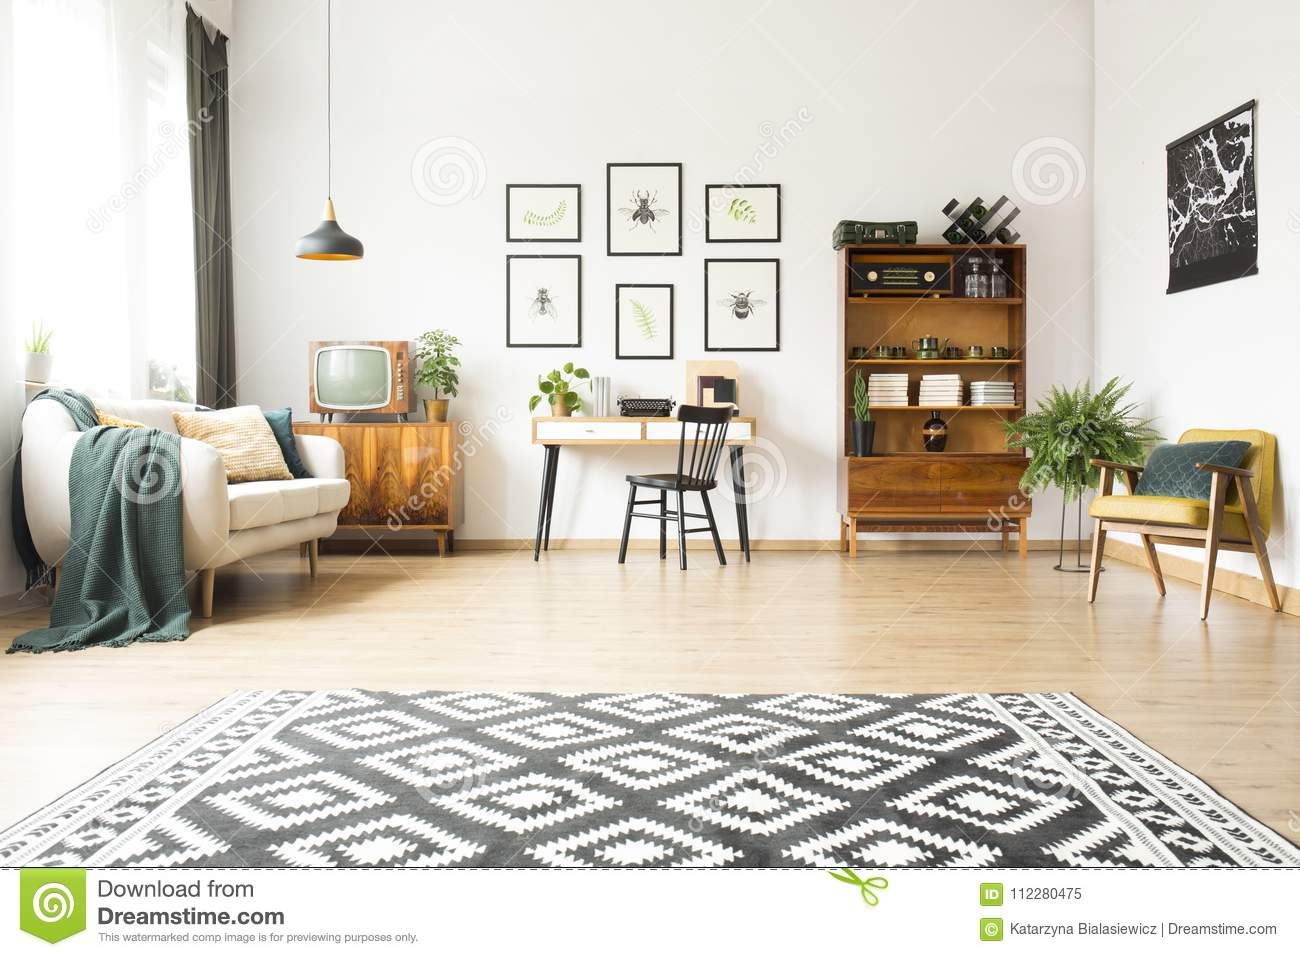 Home Office And Living Room Stock Image - Image of hipster, curtains ...